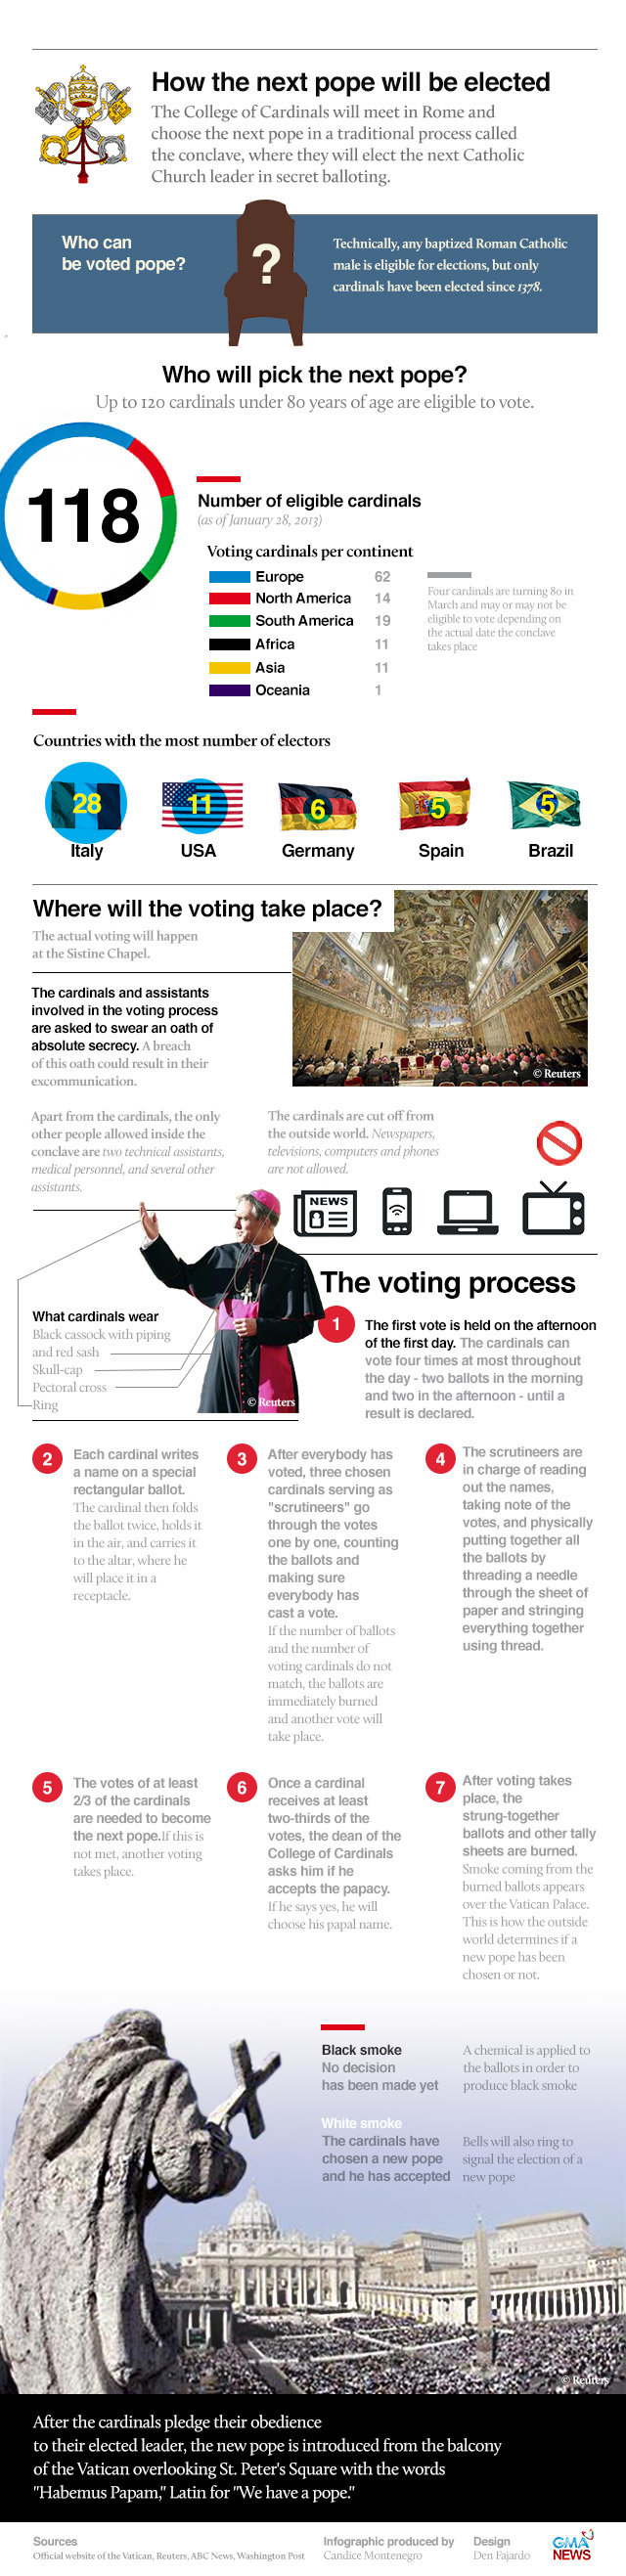 How the next pope will be elected #infographic